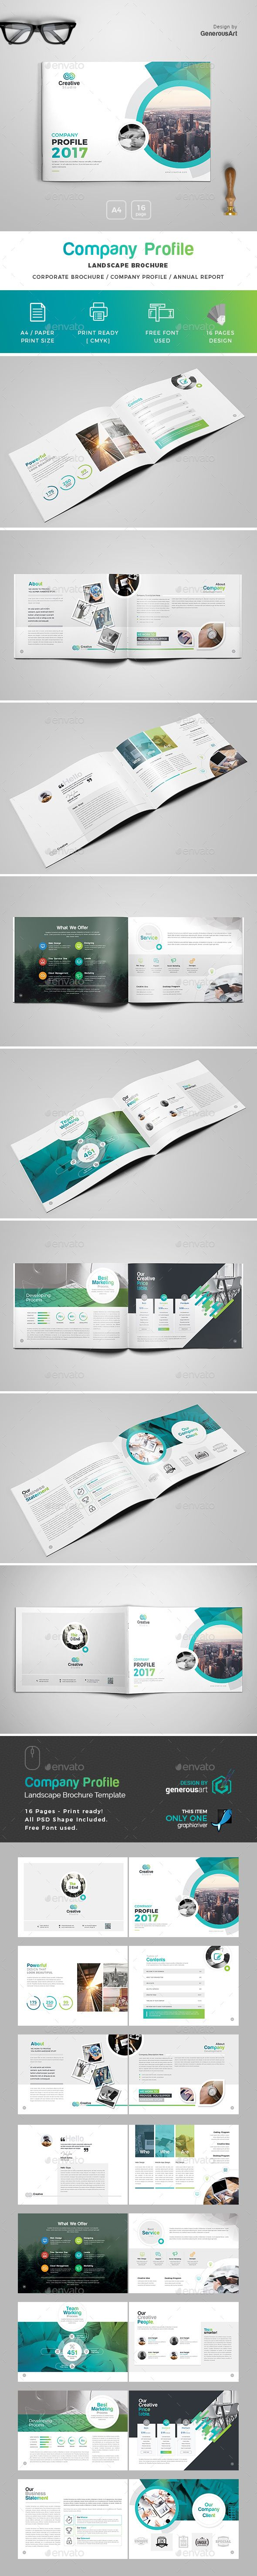 Company Profile Landscape Brochure Template — Photoshop PSD #blue #horizontal